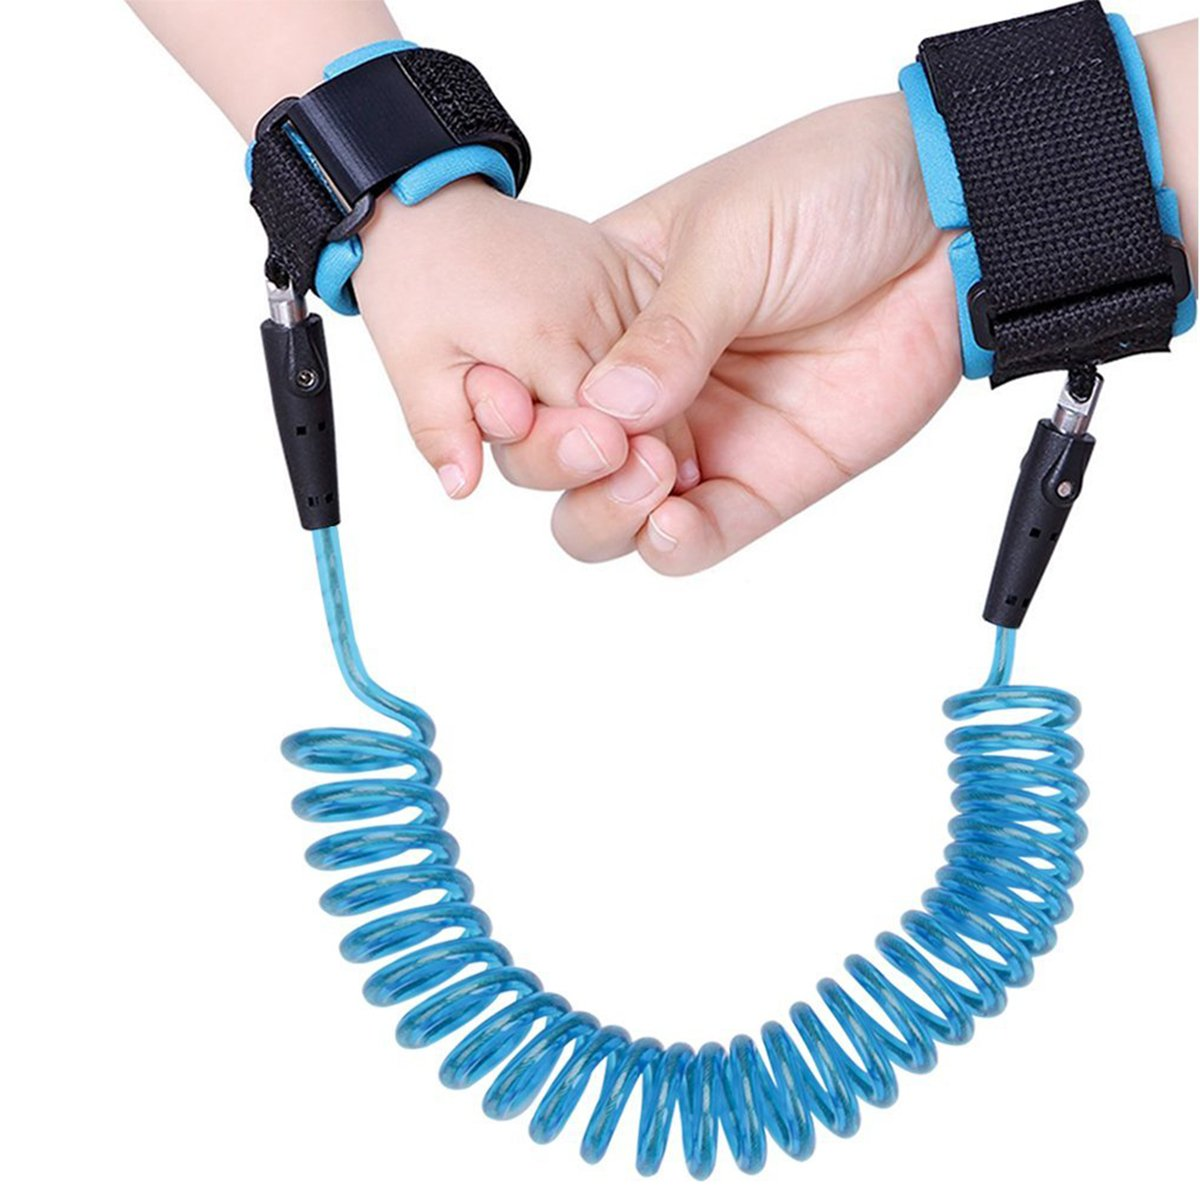 Baby Child Safety Leash Anti-Lost Wrist Link Harness Strap Rope , Safety Toddler Harness, Child Safety Tether, Child Restraint Leash , Kids Wrist Strap , Baby Travel Outdoor Safety Harness.(2.5M, bule& yellow) (bule) Yakuro